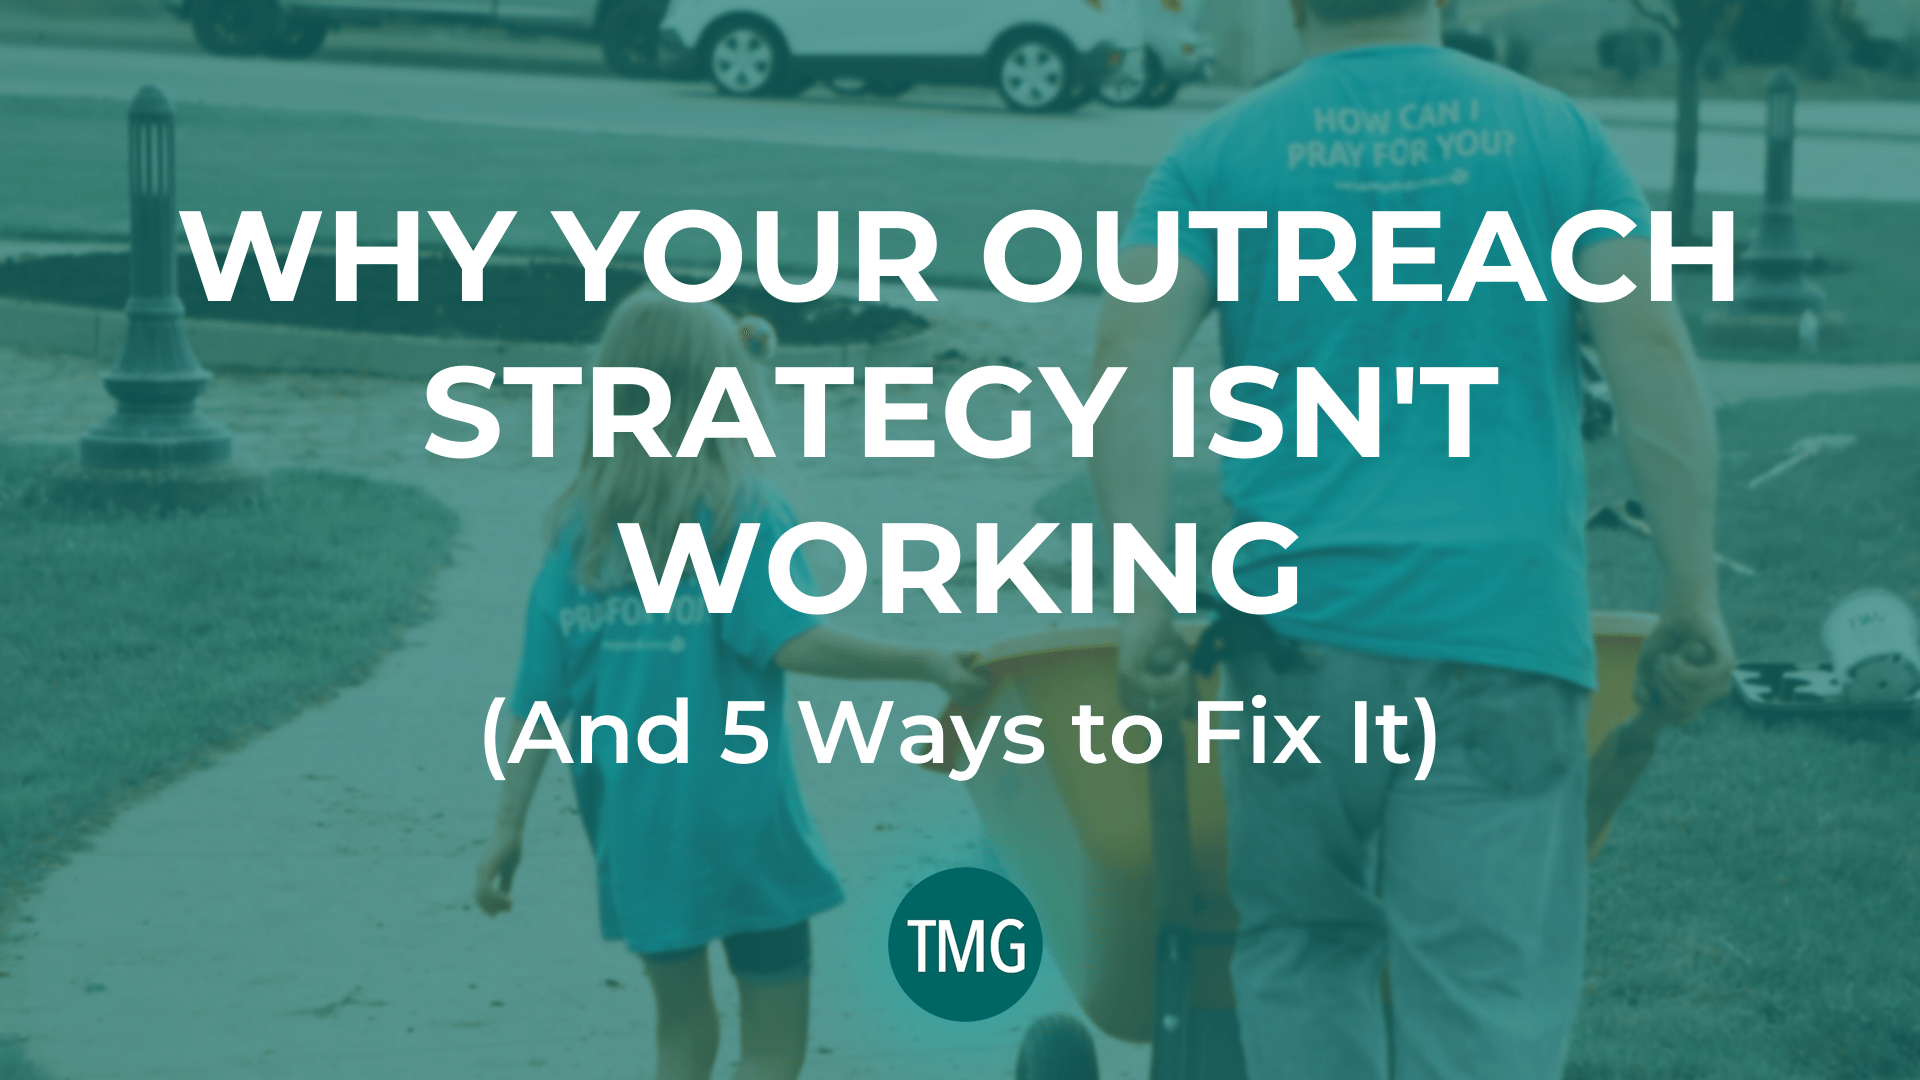 why-your-outreach-strategy-isnt-working-and-5-ways-to-fix-it